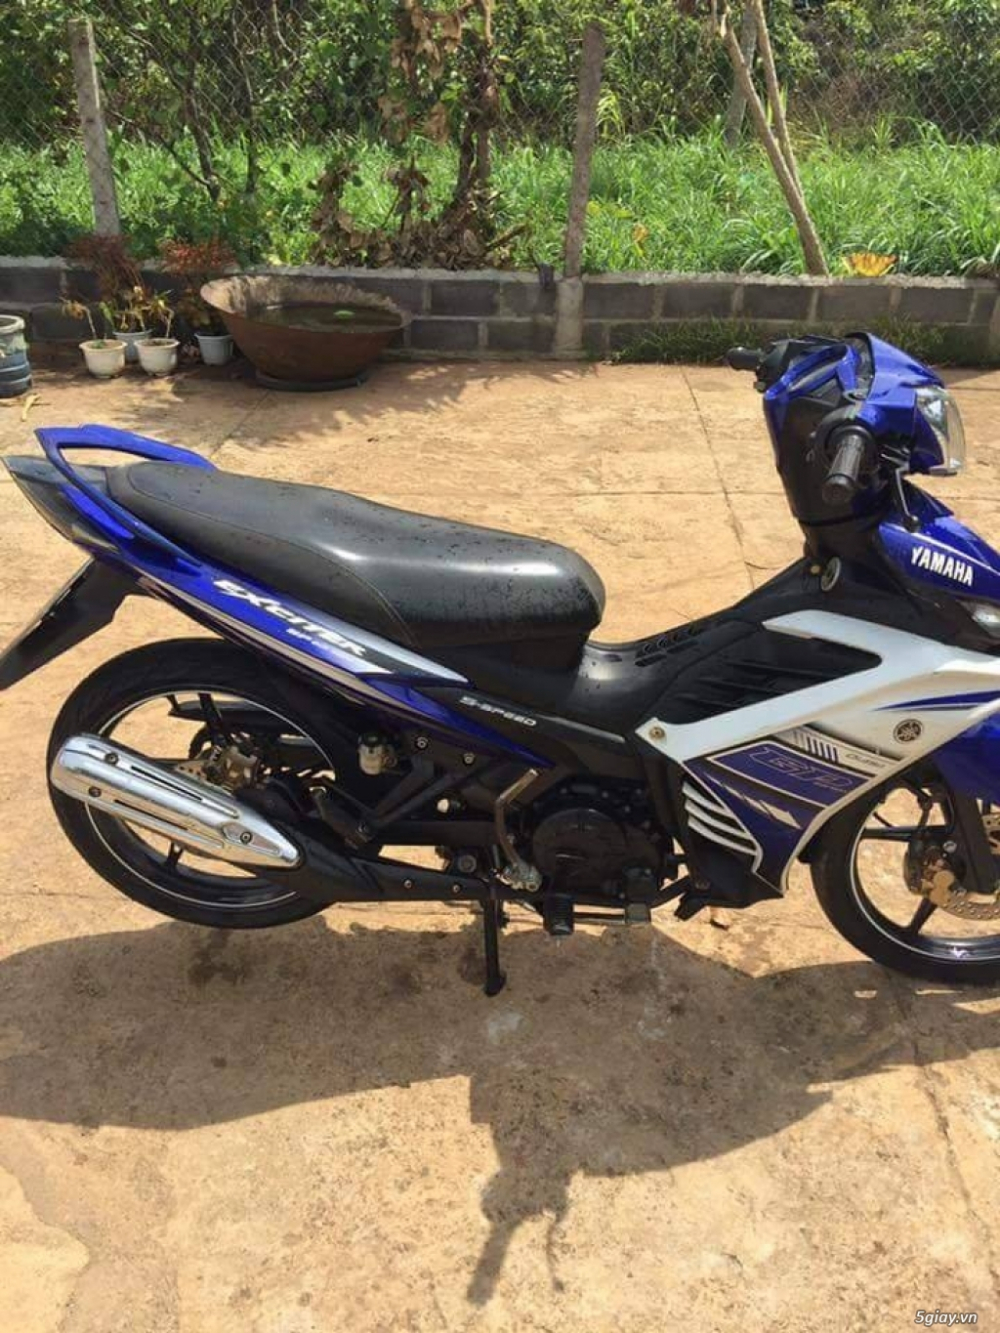 BAN XE MAY CU TRA GOP Yamaha Exciter 135 con tay